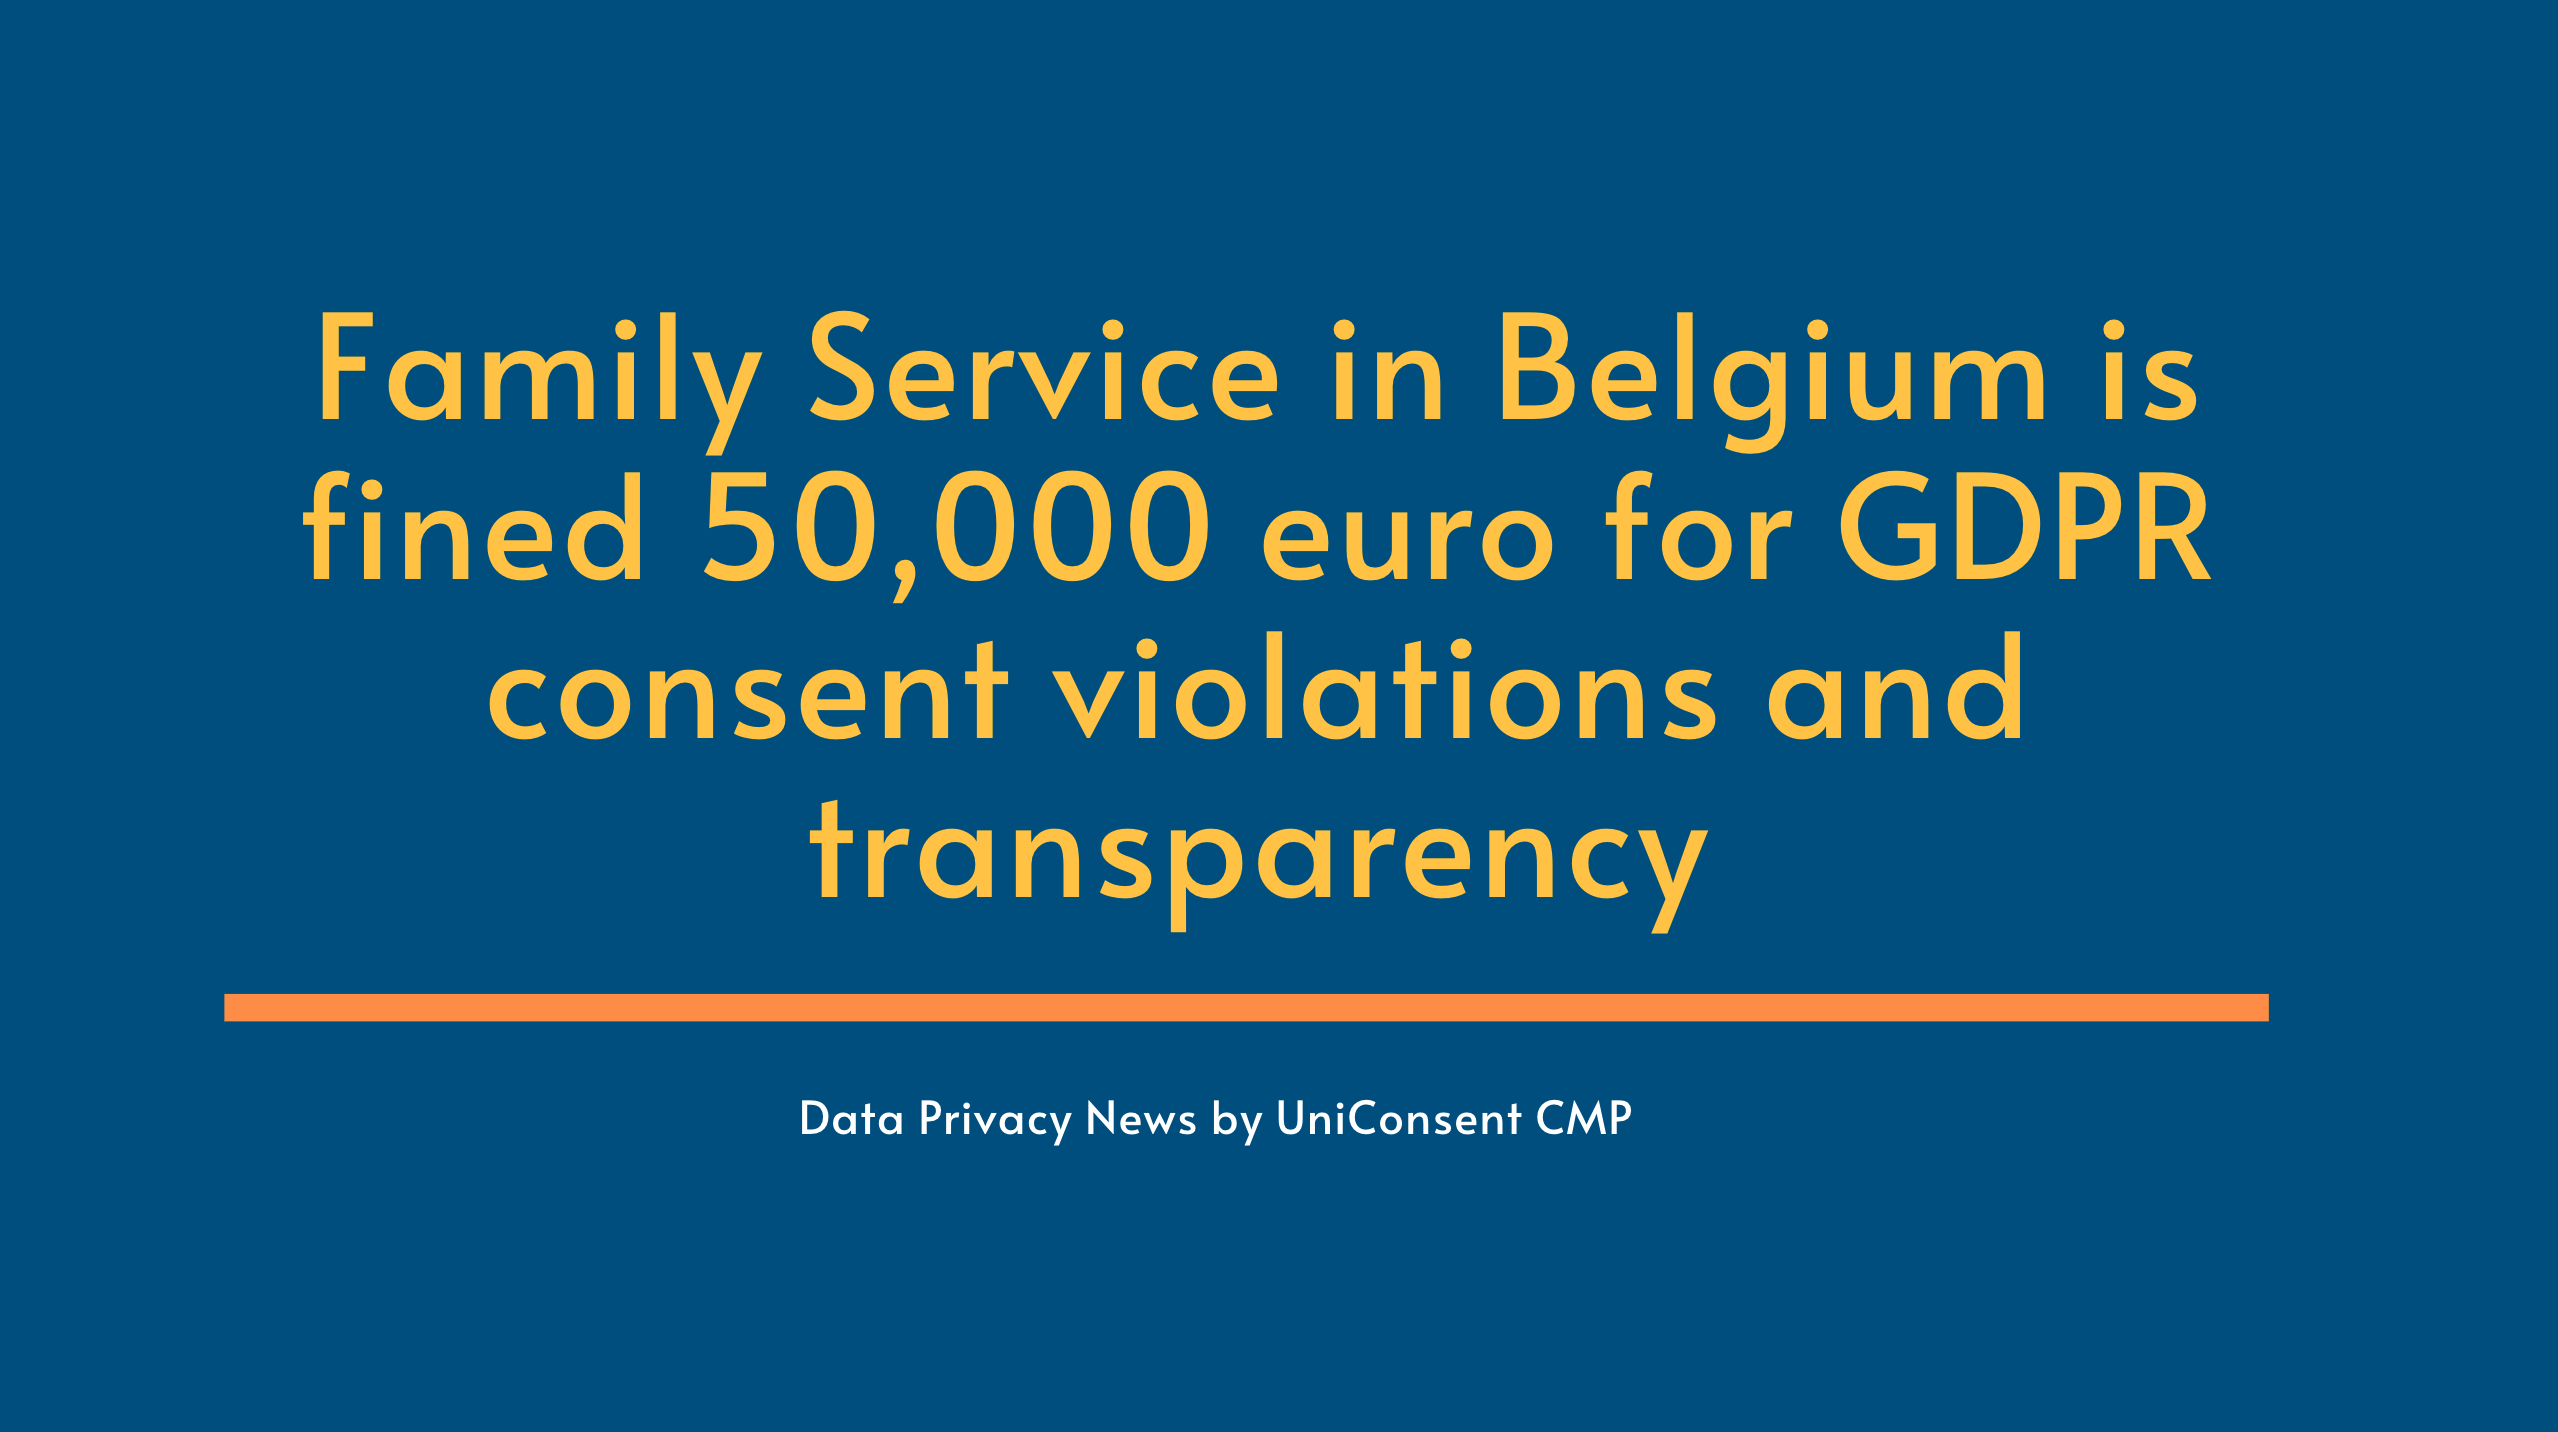 Family Service in Belgium is fined 50,000 euro for GDPR consent violations and transparency